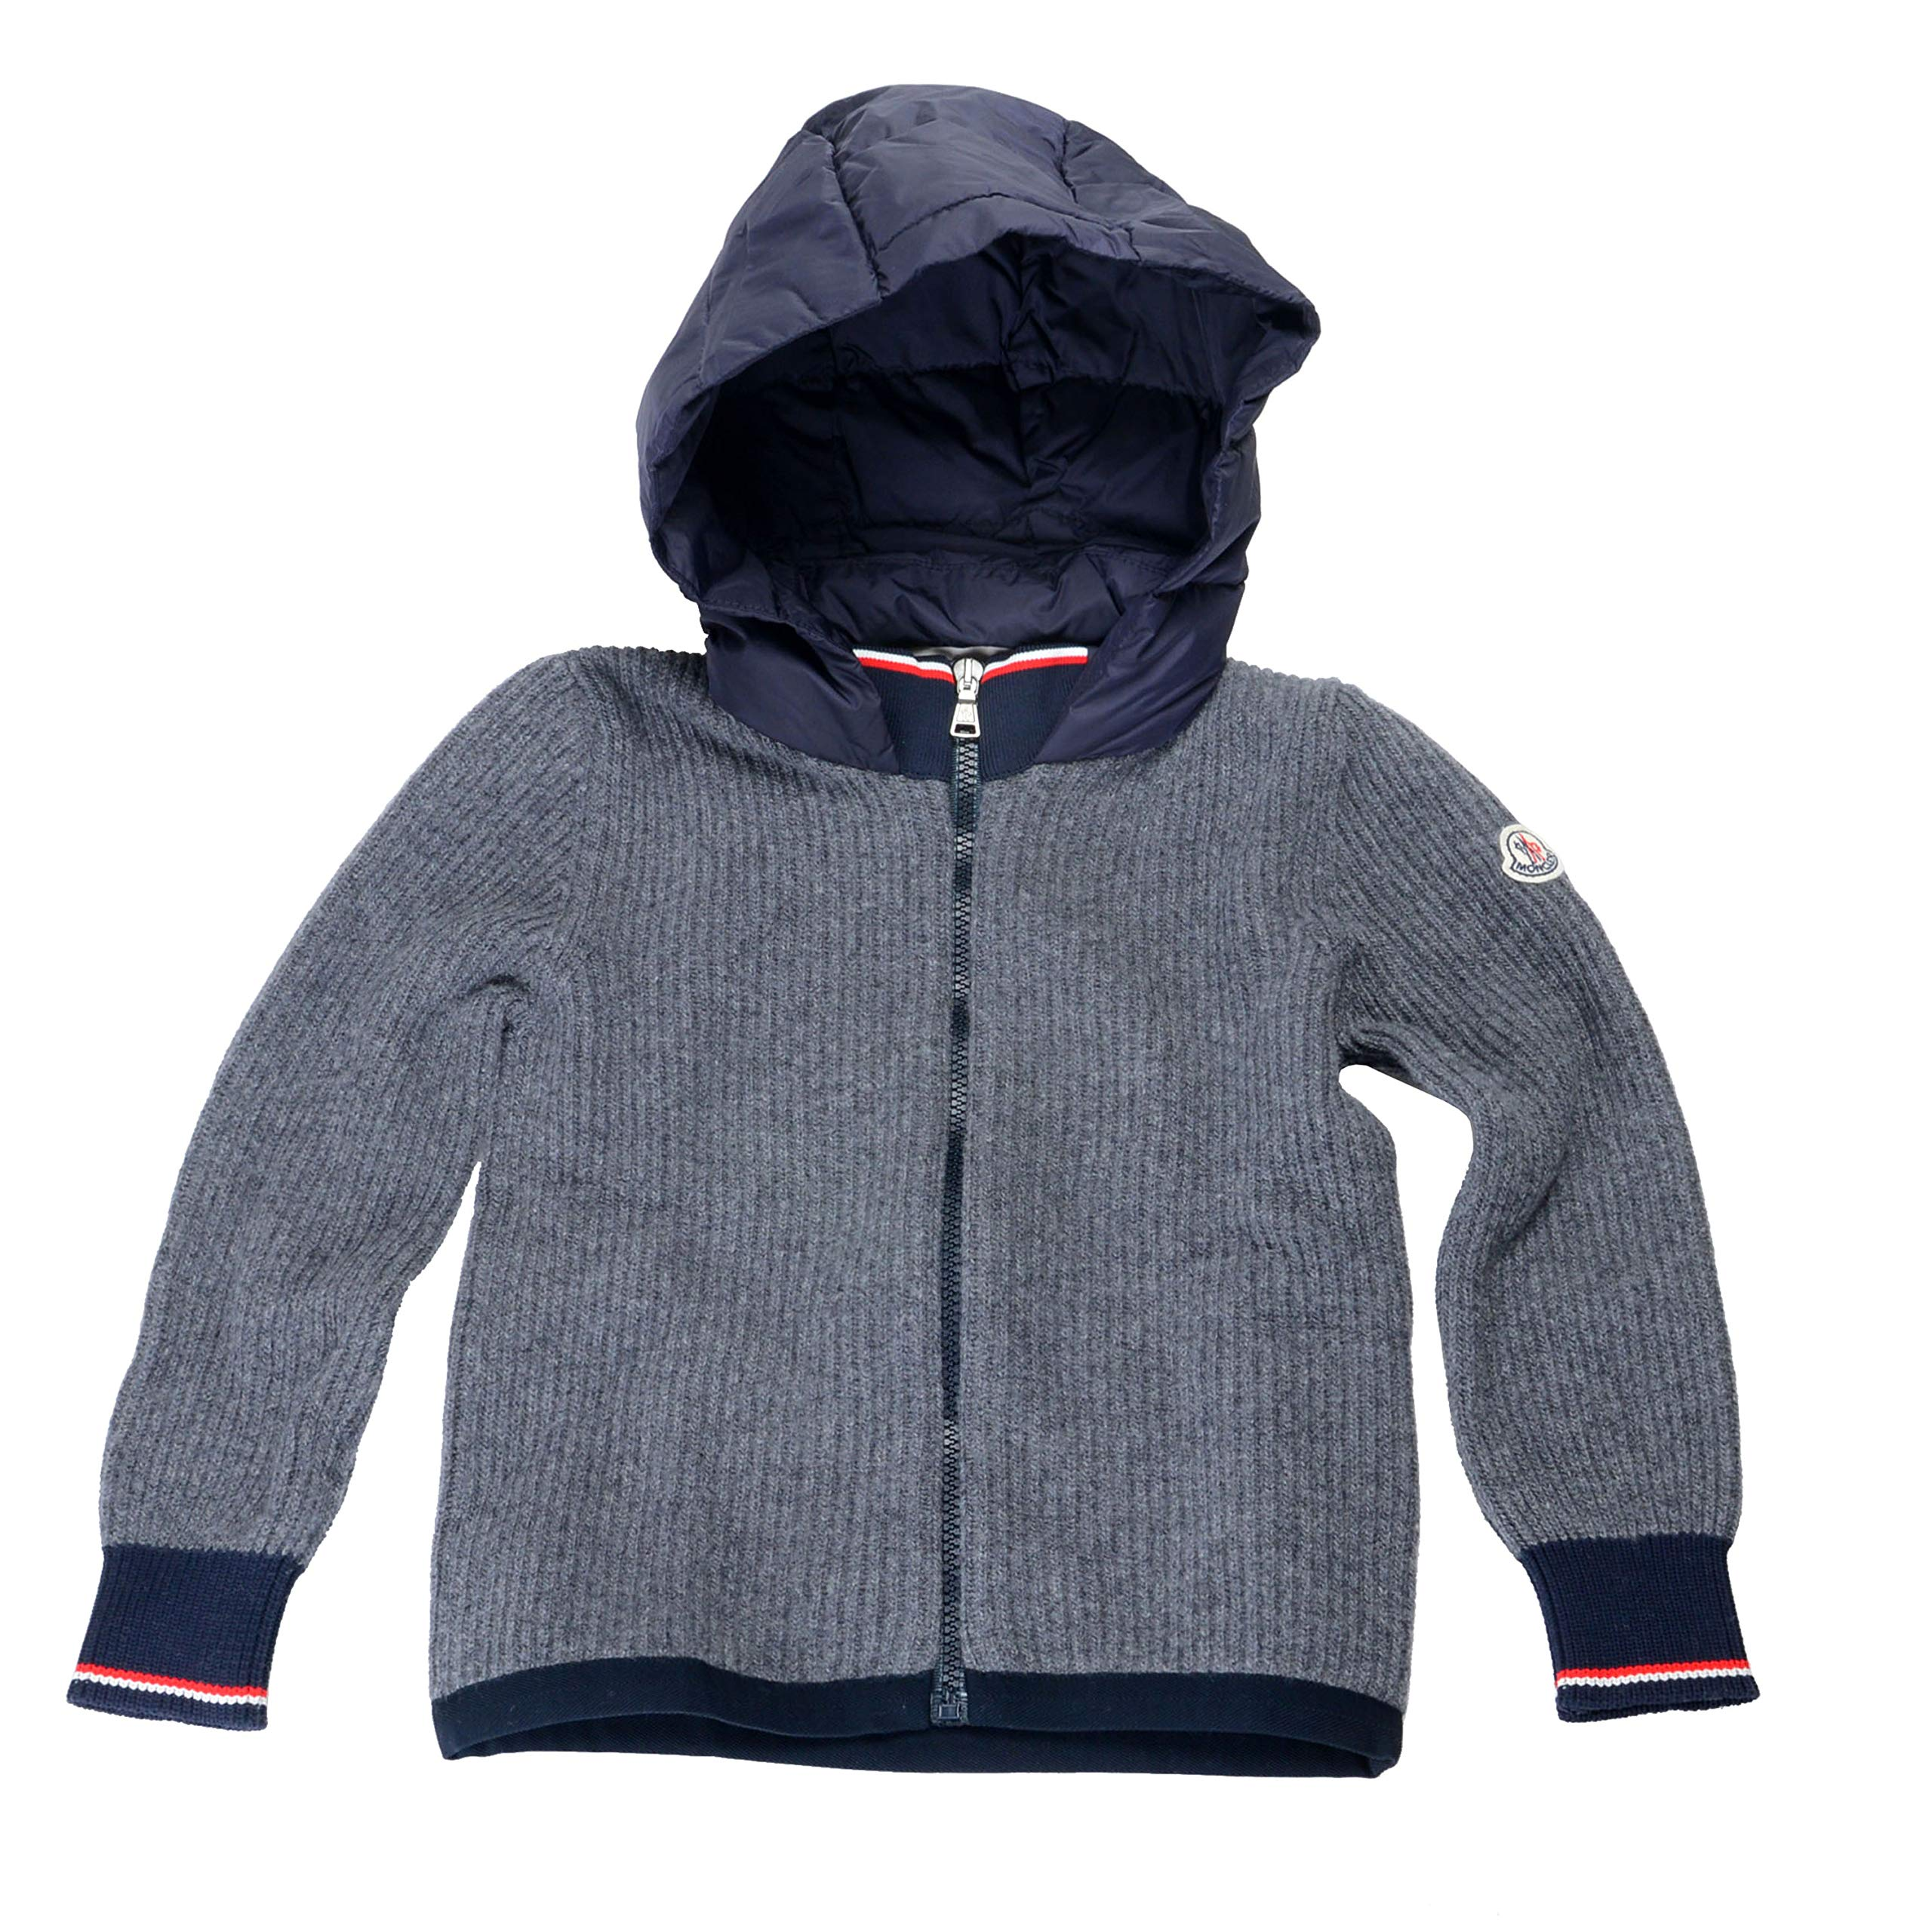 Moncler Kid's Gray 100% Wool Knitted Hooded Sweater Jacket Sz US 5 Years IT 5A